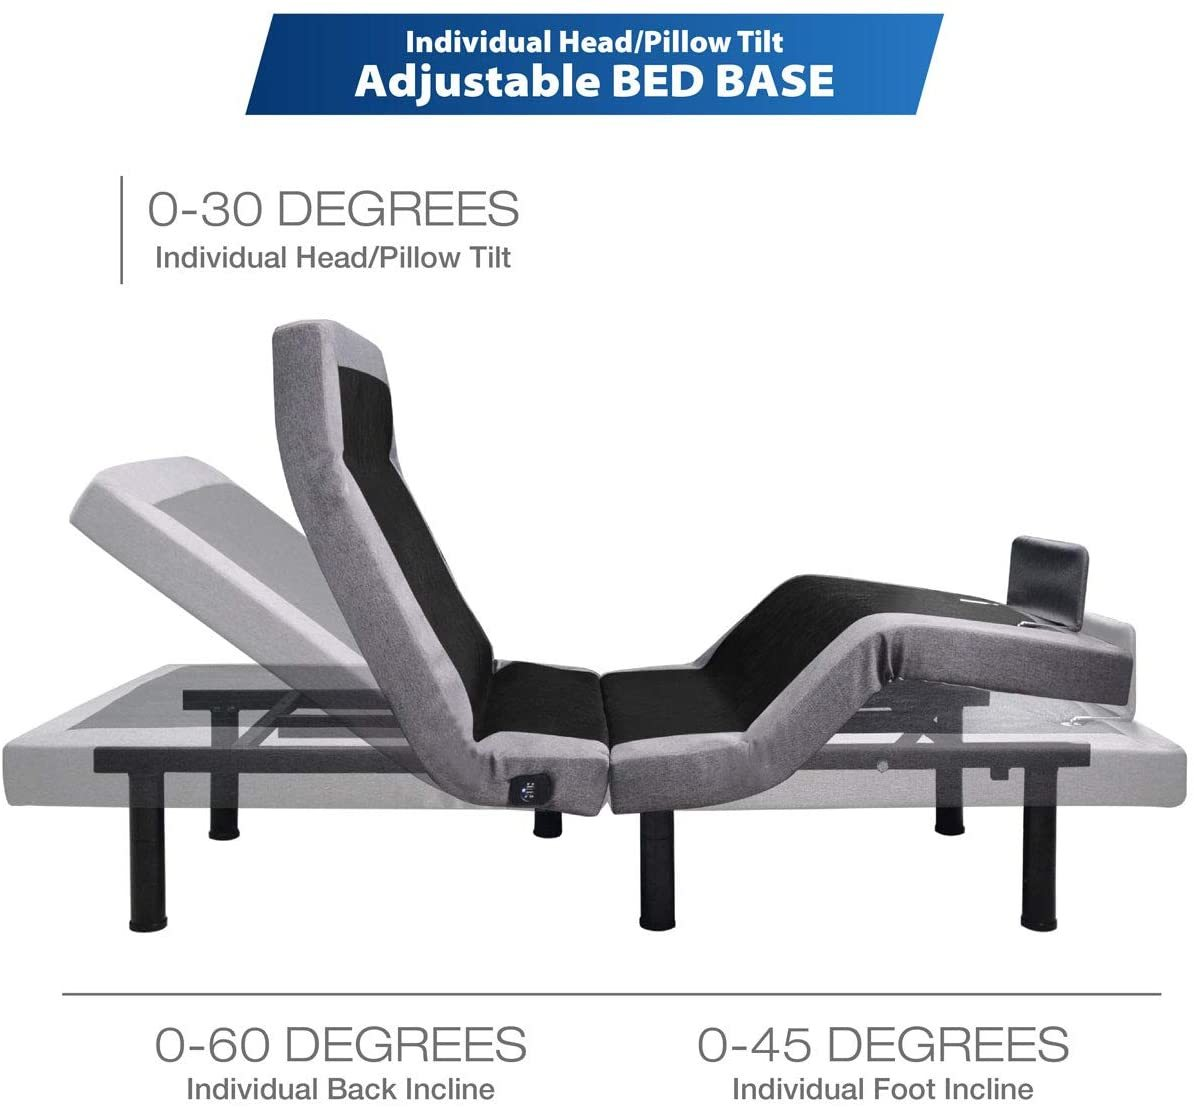 MAXXPRIME Adjustable Bed Reviews - Adjustments